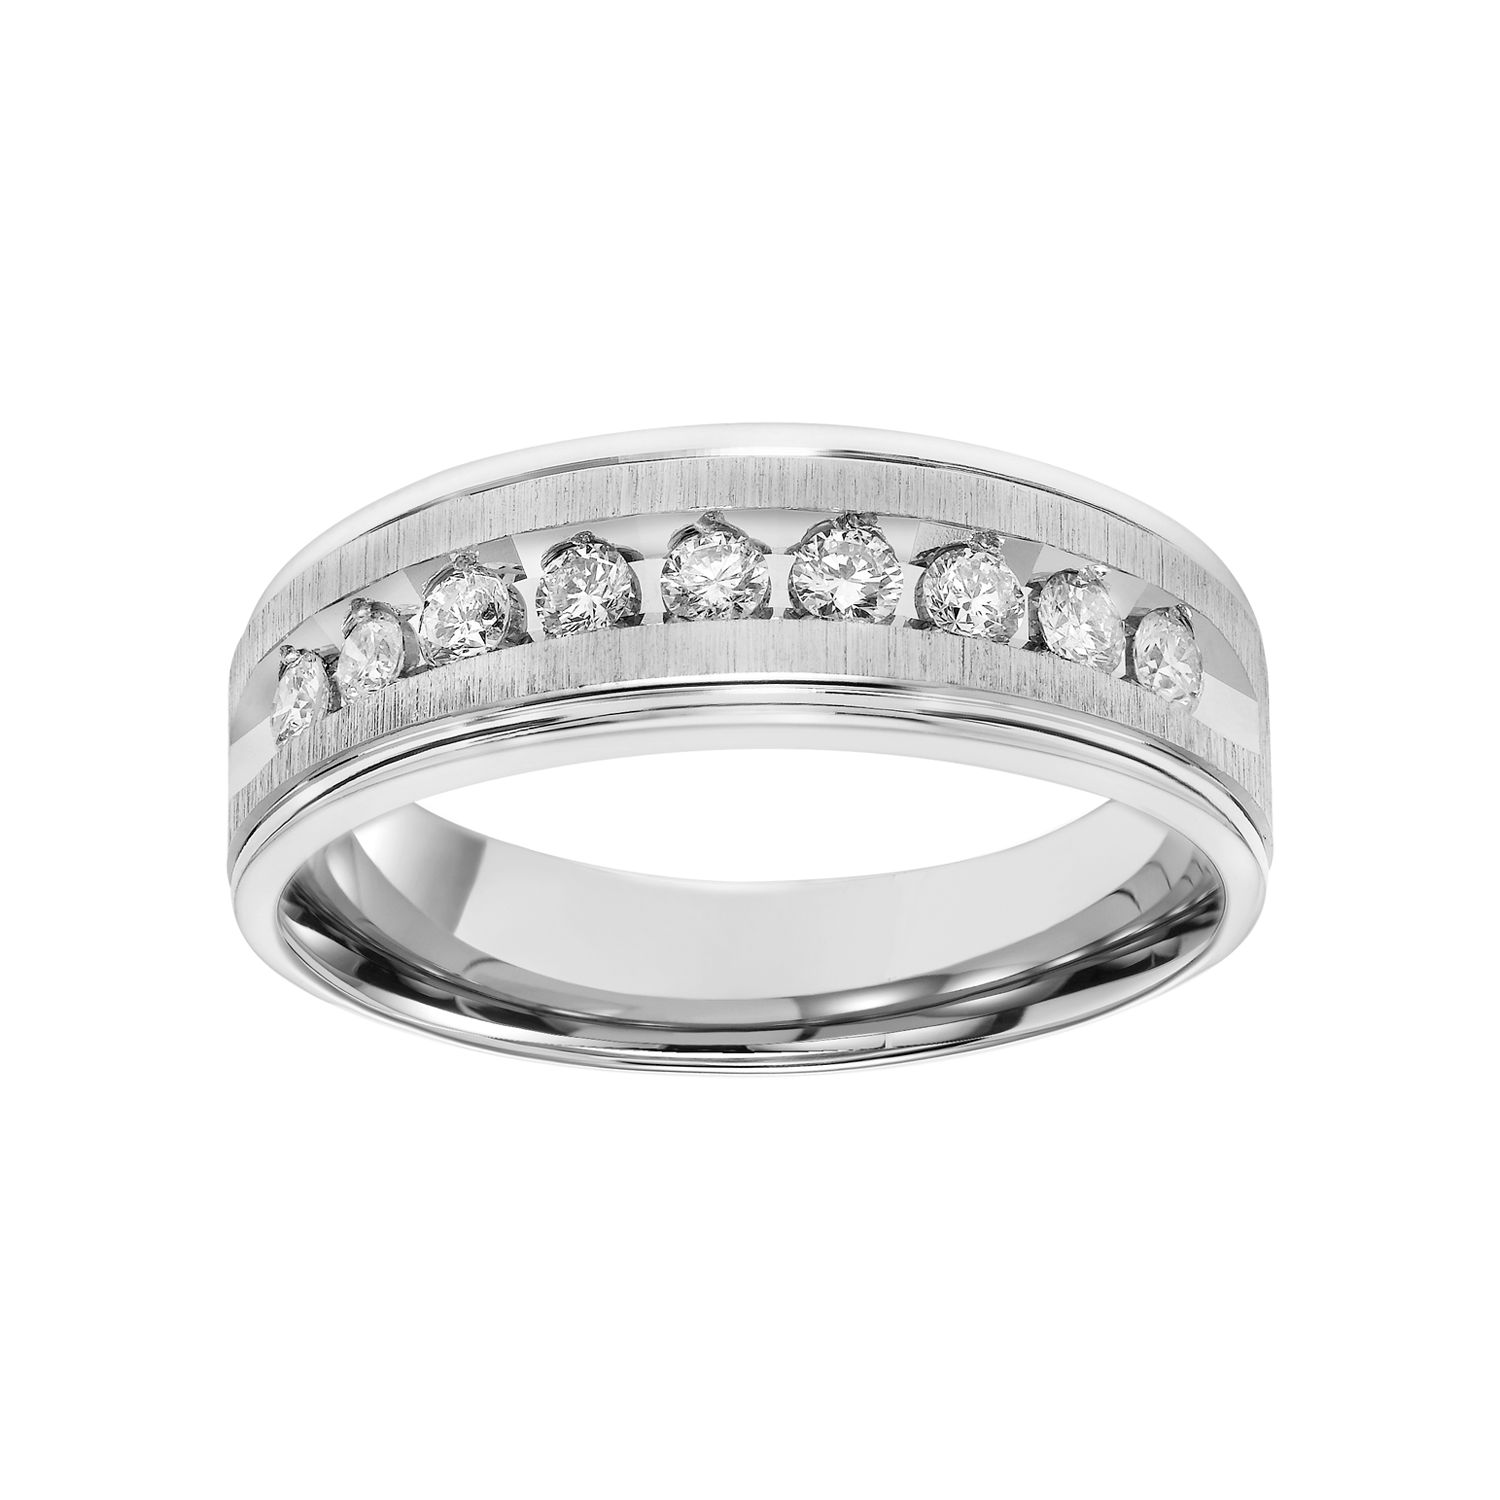 Simply Vera Vera Wang Mens 14k White Gold 12 Carat TW Diamond